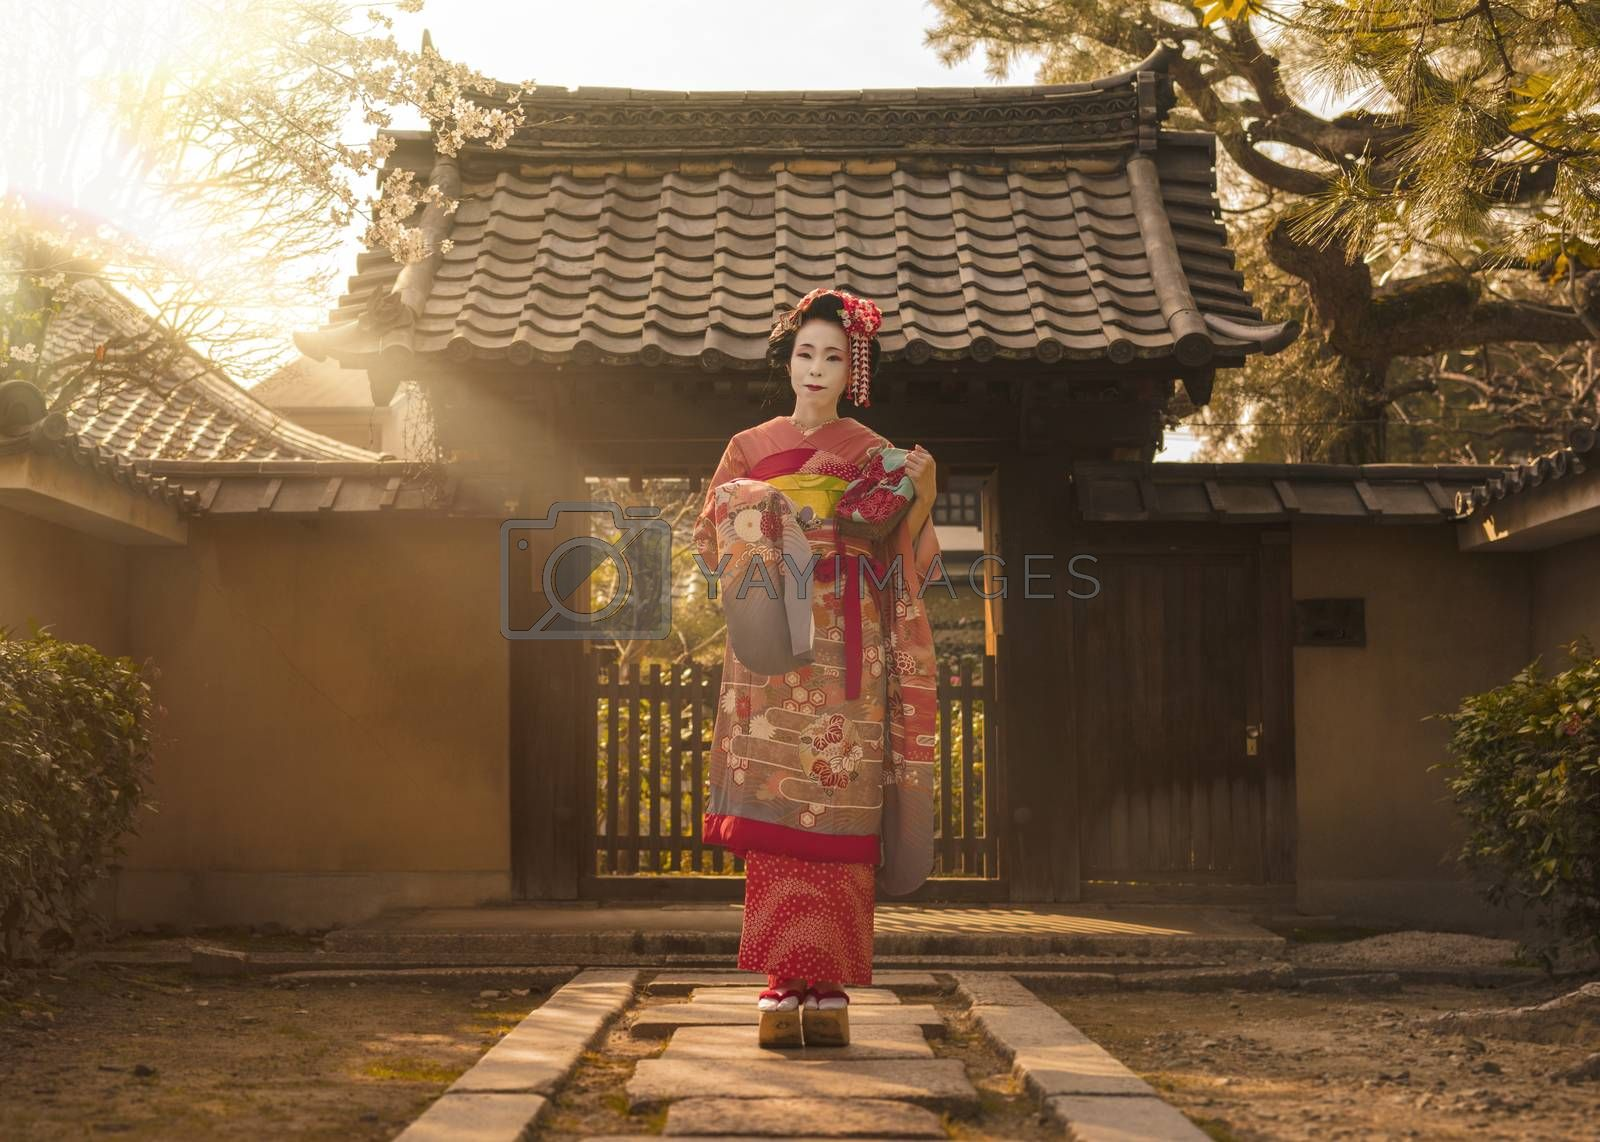 Maiko in a kimono posing on a stone path in front of the gate of a traditional Japanese house surrounded by cherry blossoms and pine trees in the rays of sunset.